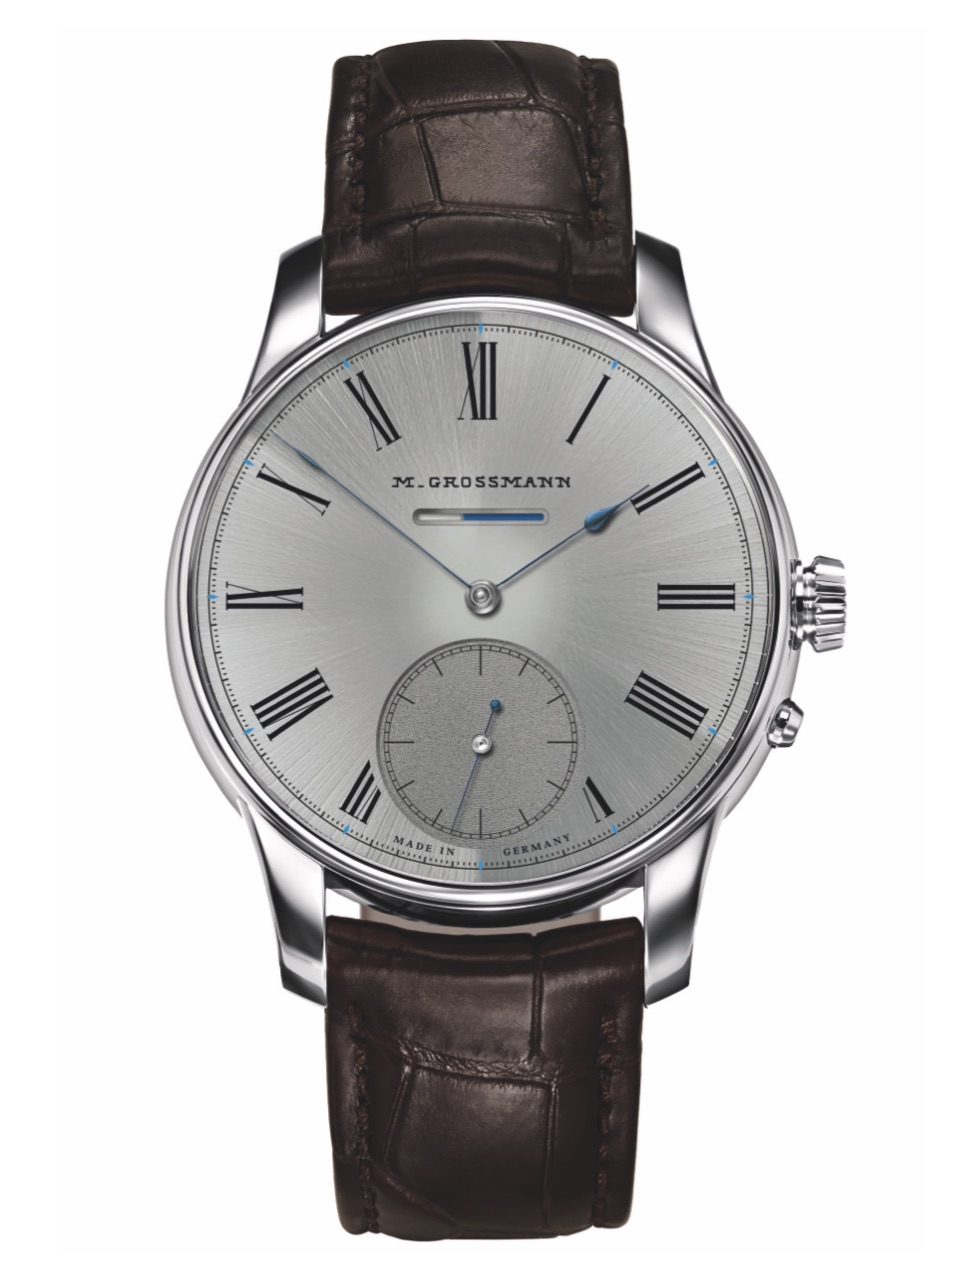 only watch 2019 moritz grossman